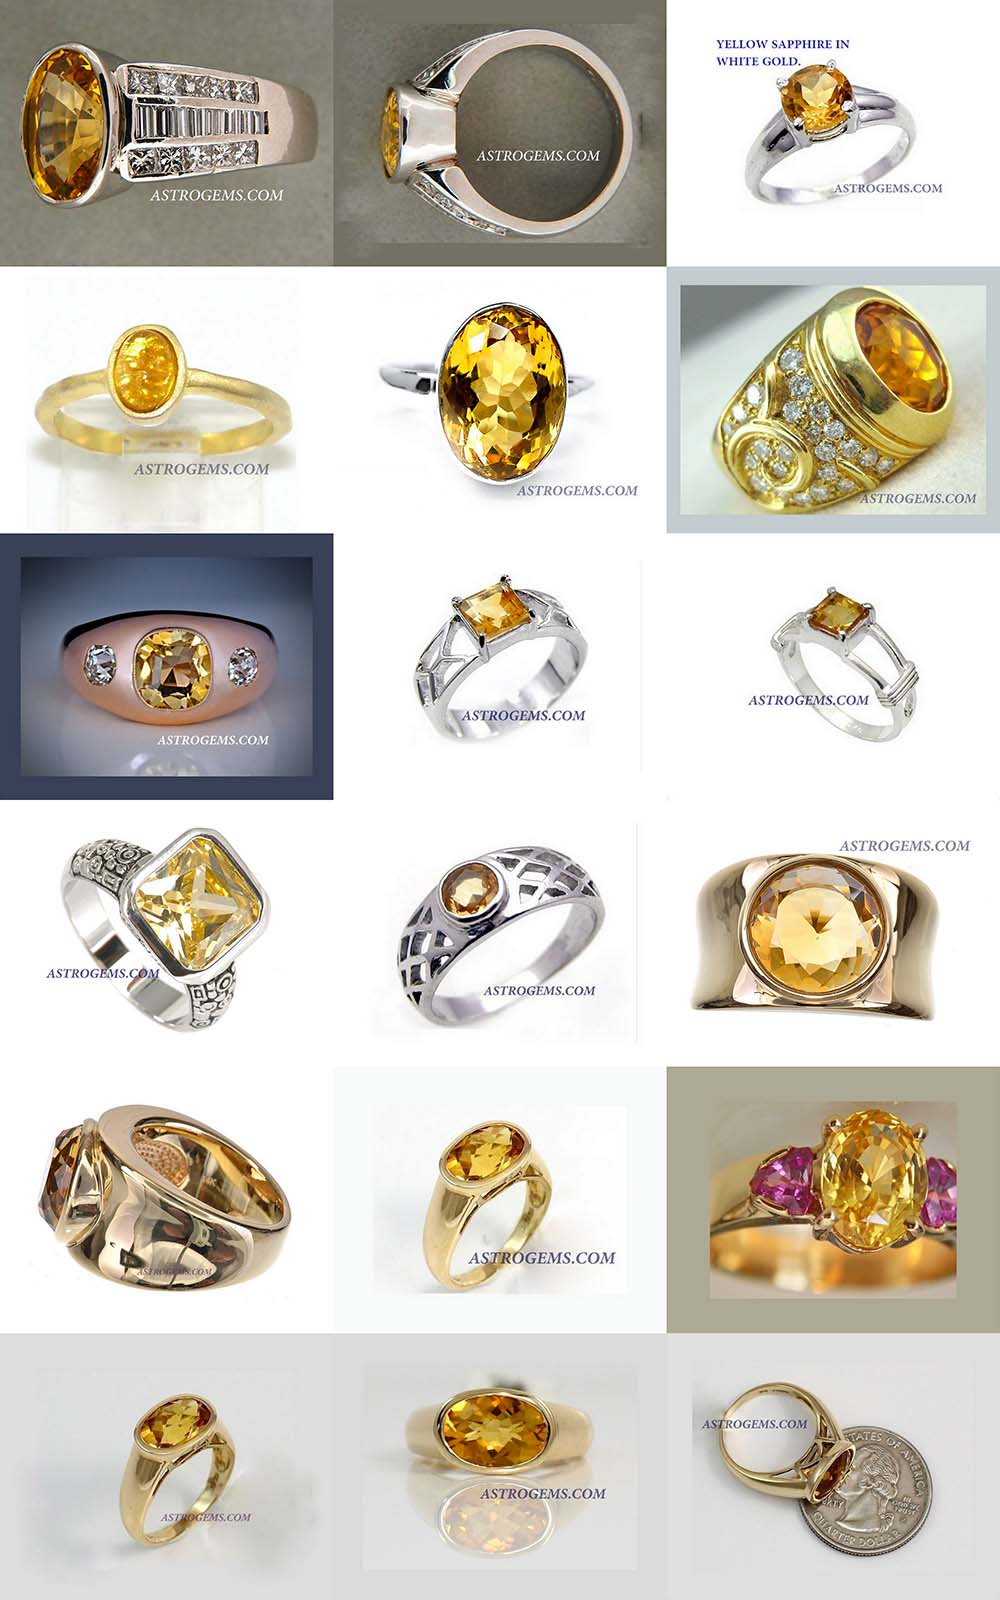 Astrogems can make ayurvedic Yellow Sapphire rings in any style.